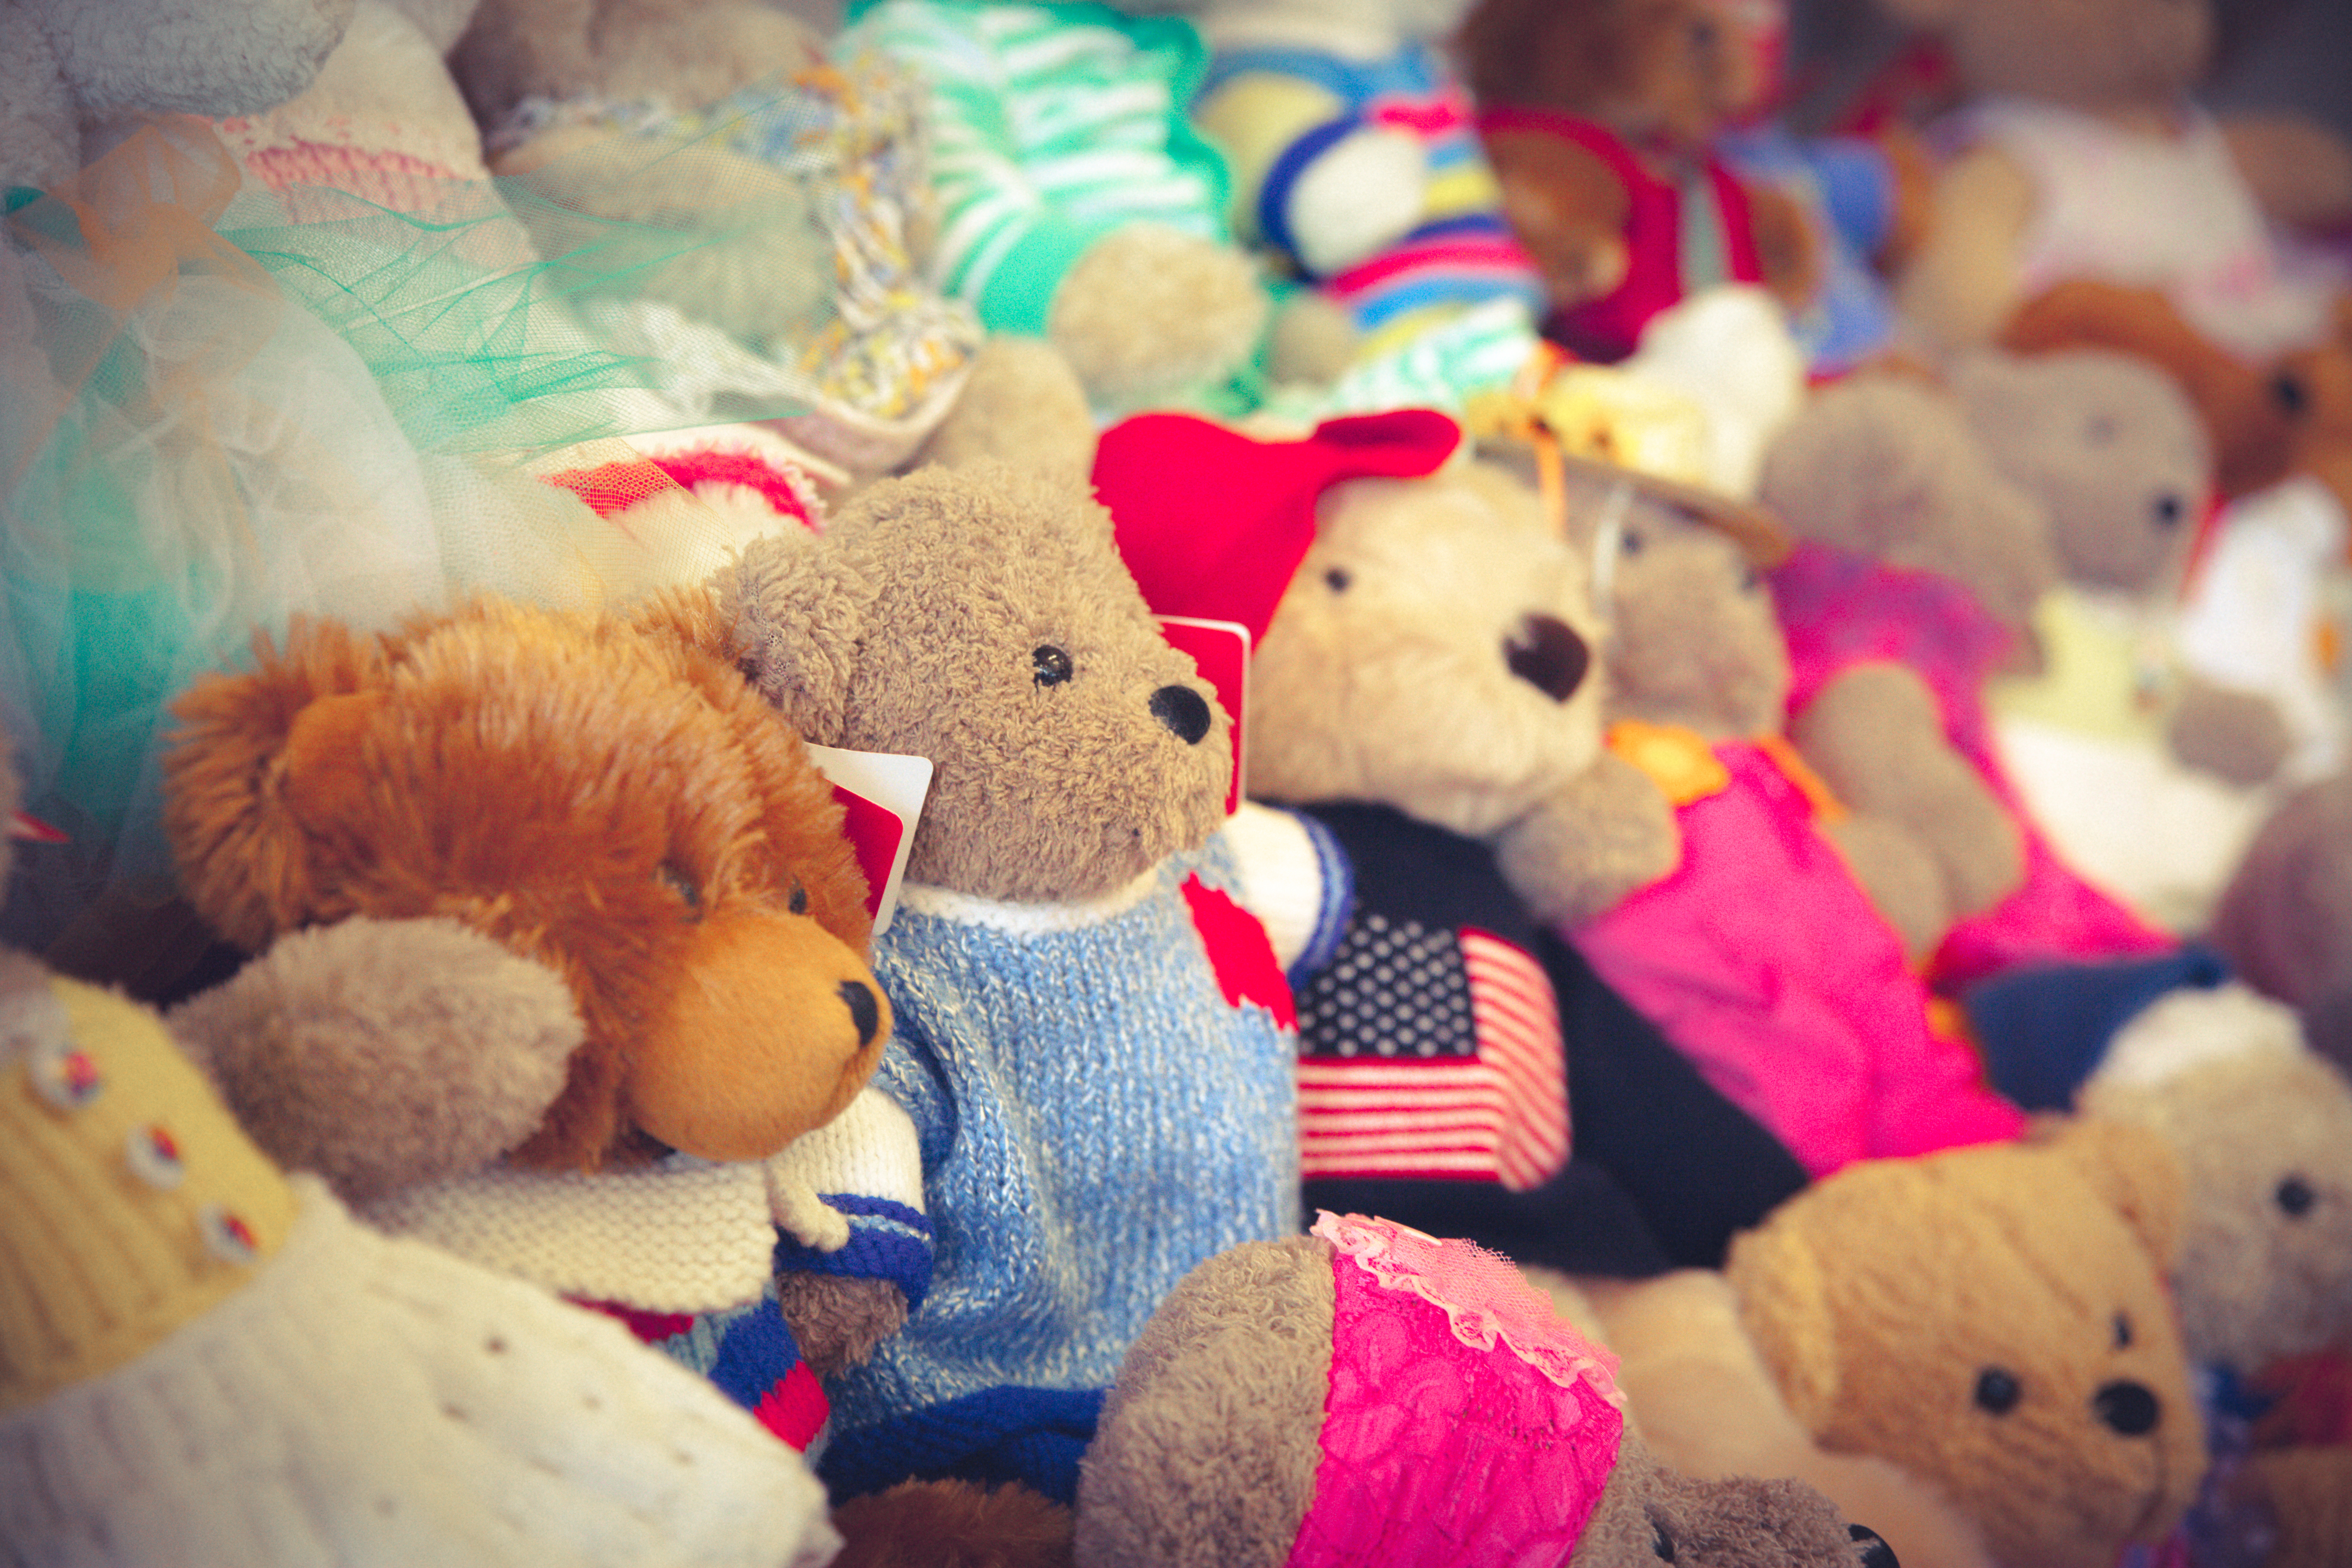 Bears in the boutique await their new owners at the annual Teddy Bear Tea event.